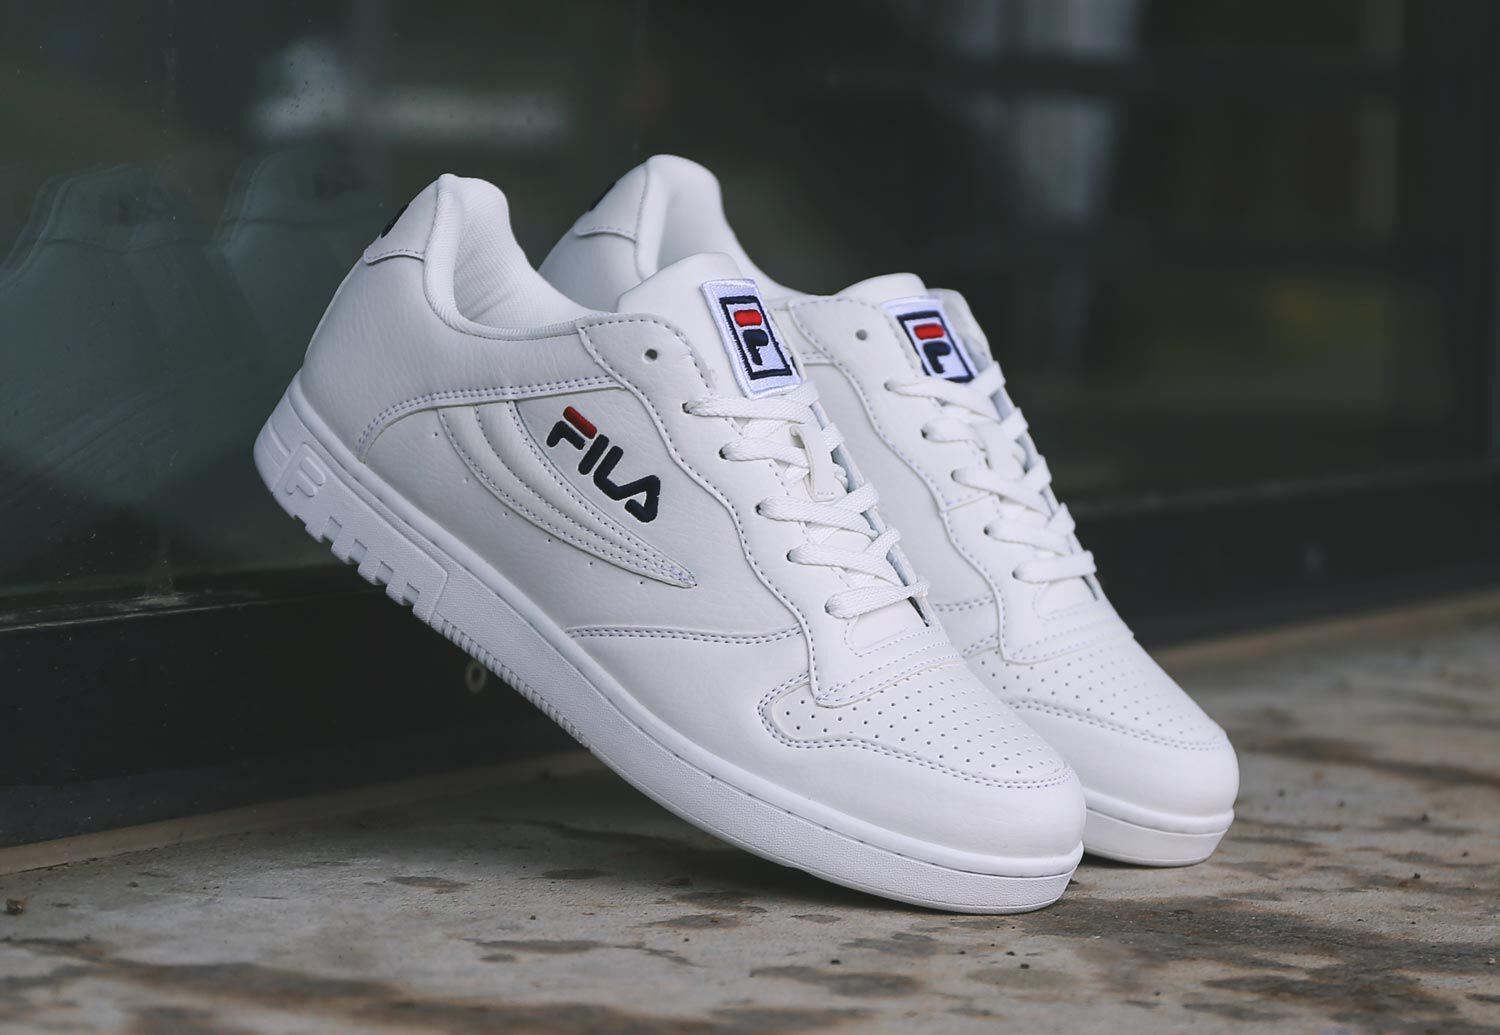 Fila FX100 Low W - Sneakers Low at